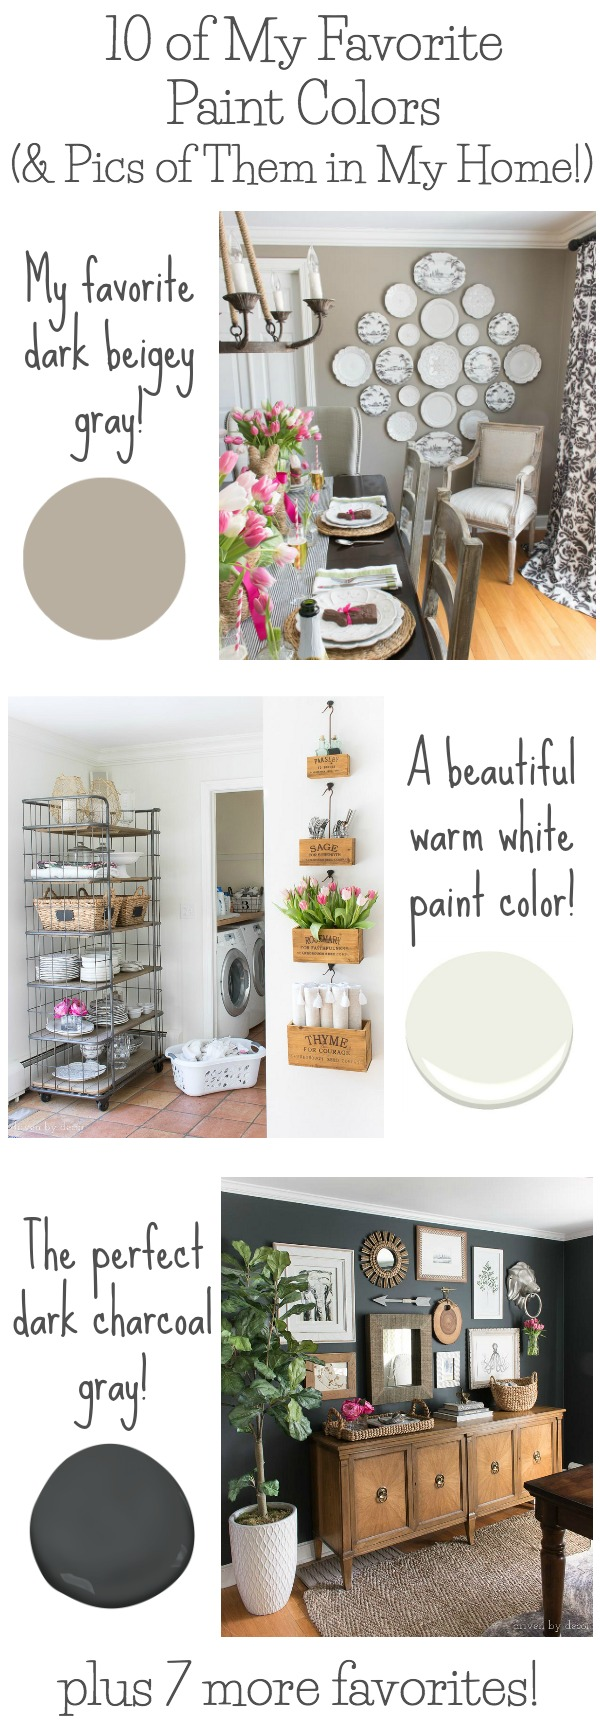 Have a hard time choosing paint colors? Love the favorite paint colors shared in this post! Seeing them in real spaces helps so much to figure out what's best for your own home! Grays, whites, black, green, and more!